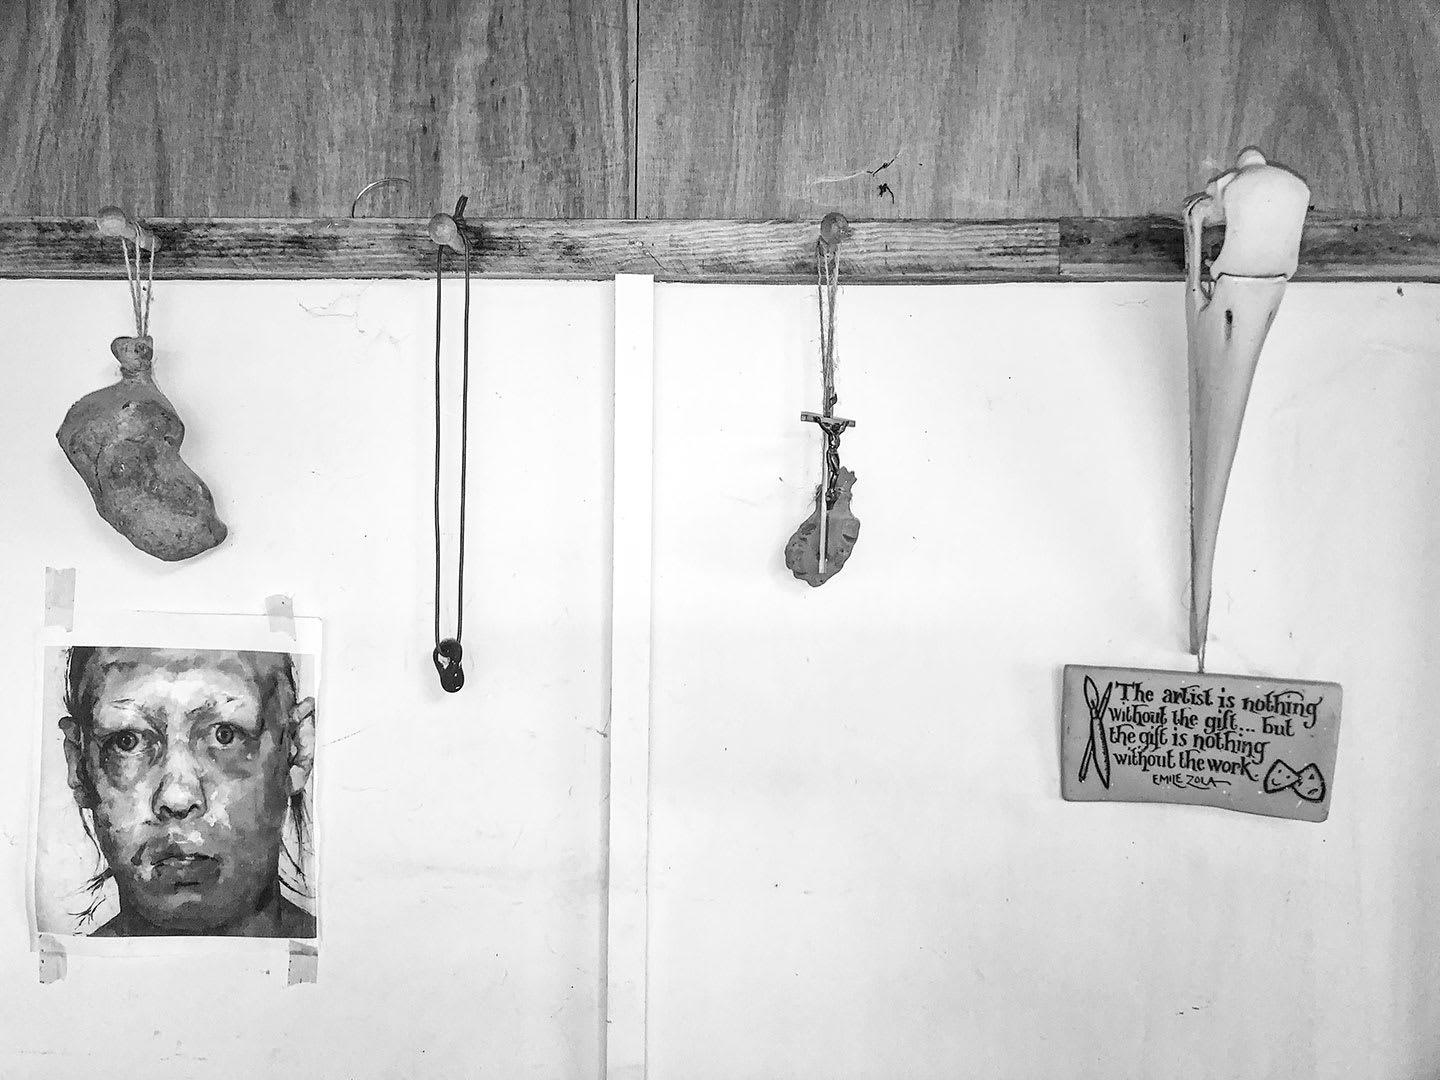 A wall with various objects hanging on it.